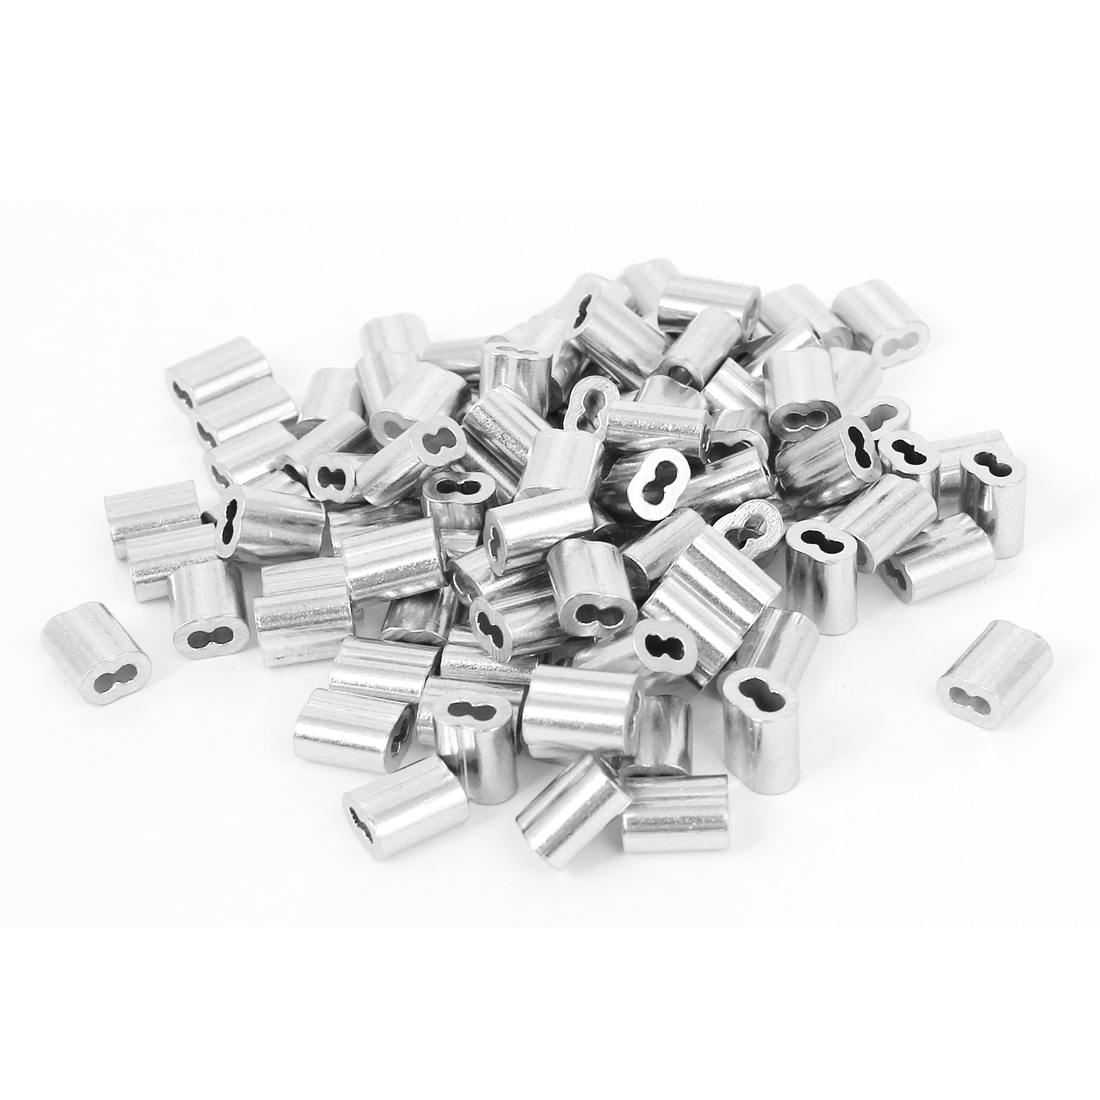 UXCELL 100 Pcs/lot 9x7x5mm Wire Rope Aluminum Sleeves Clip Fittings Cable Crimps Fit for Steel Wire Rope Dia 1.8mm/1/16